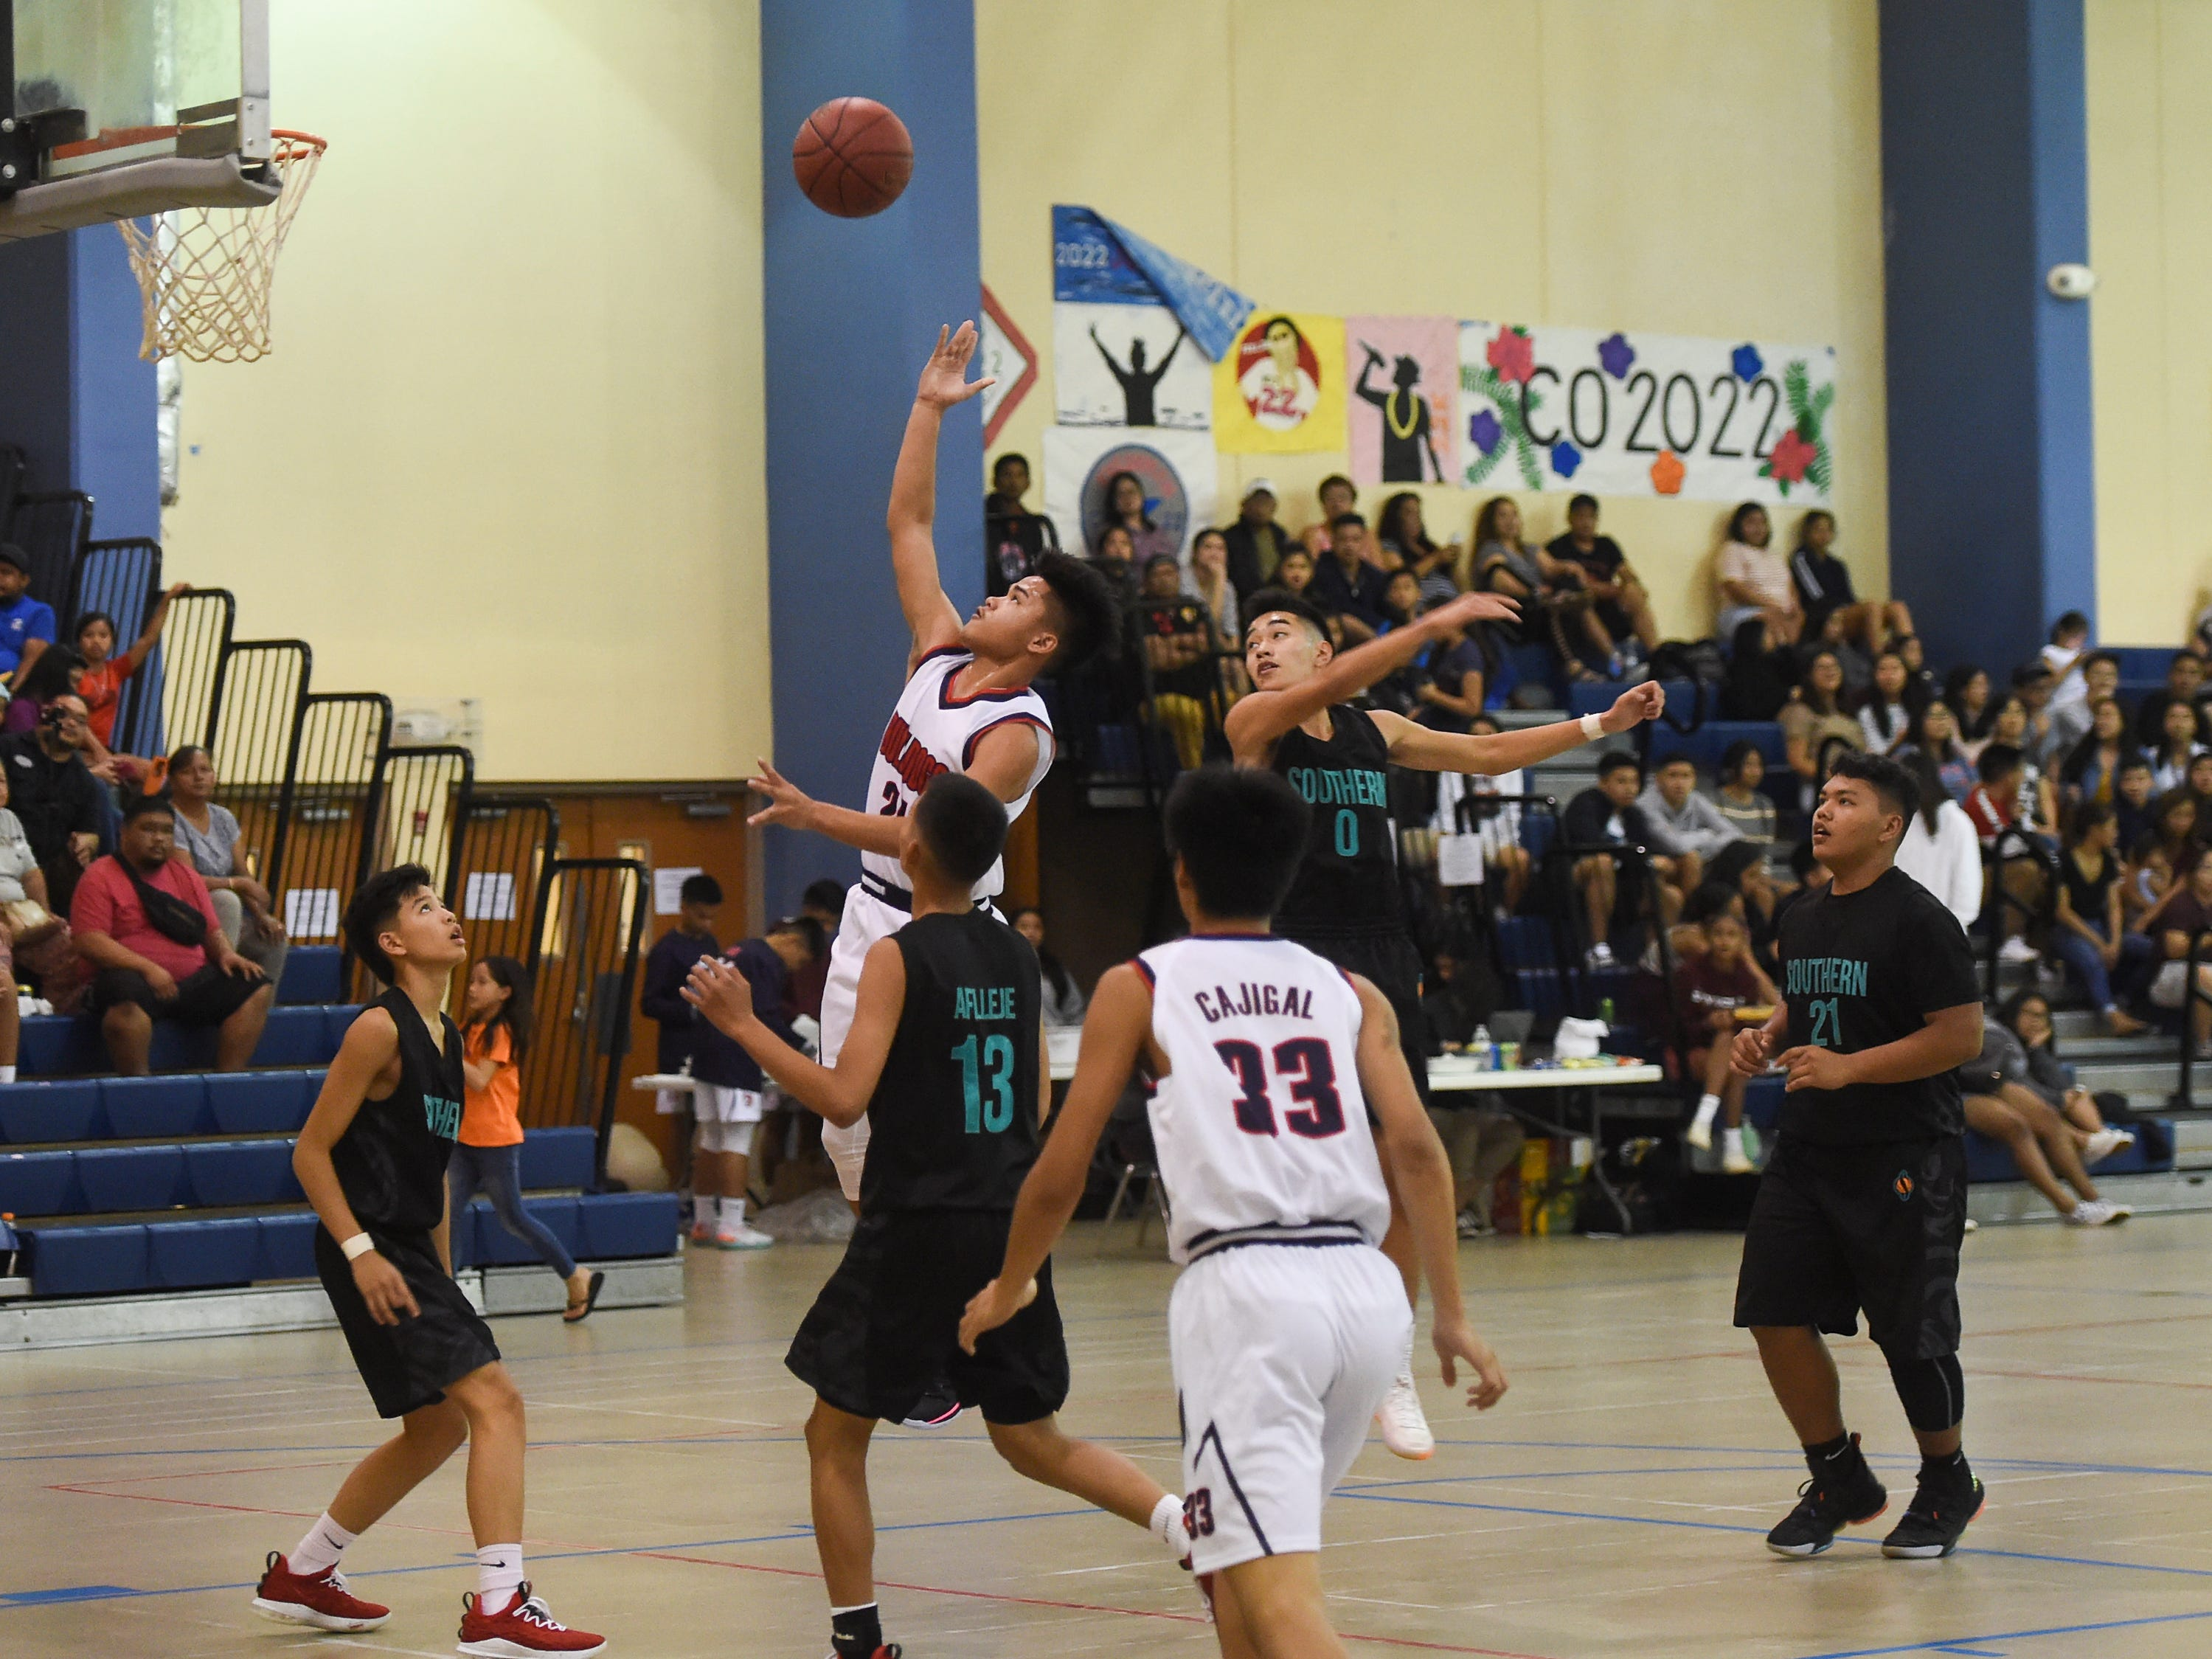 Okkodo's Kobe Santos (24) drives to the bucket against the Southern Dolphins during their IIAAG Boys' Basketball game at the Okkodo High School Gym, Feb. 8, 2019.